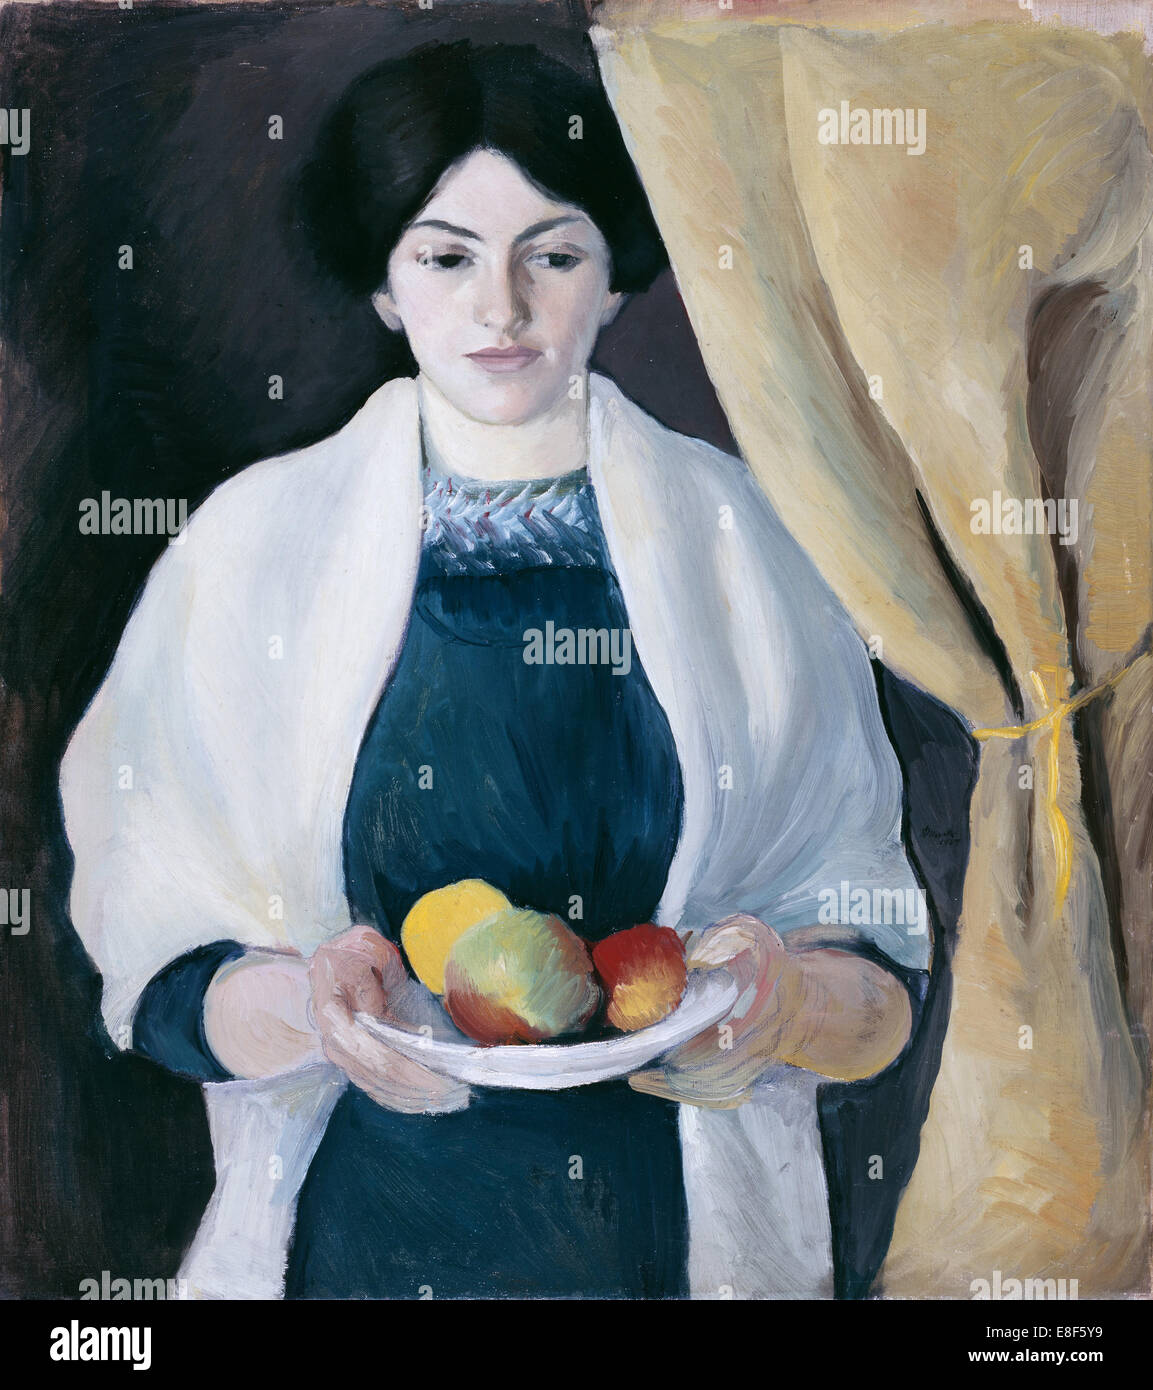 Portrait with Apples. Artist: Macke, August (1887-1914) - Stock Image